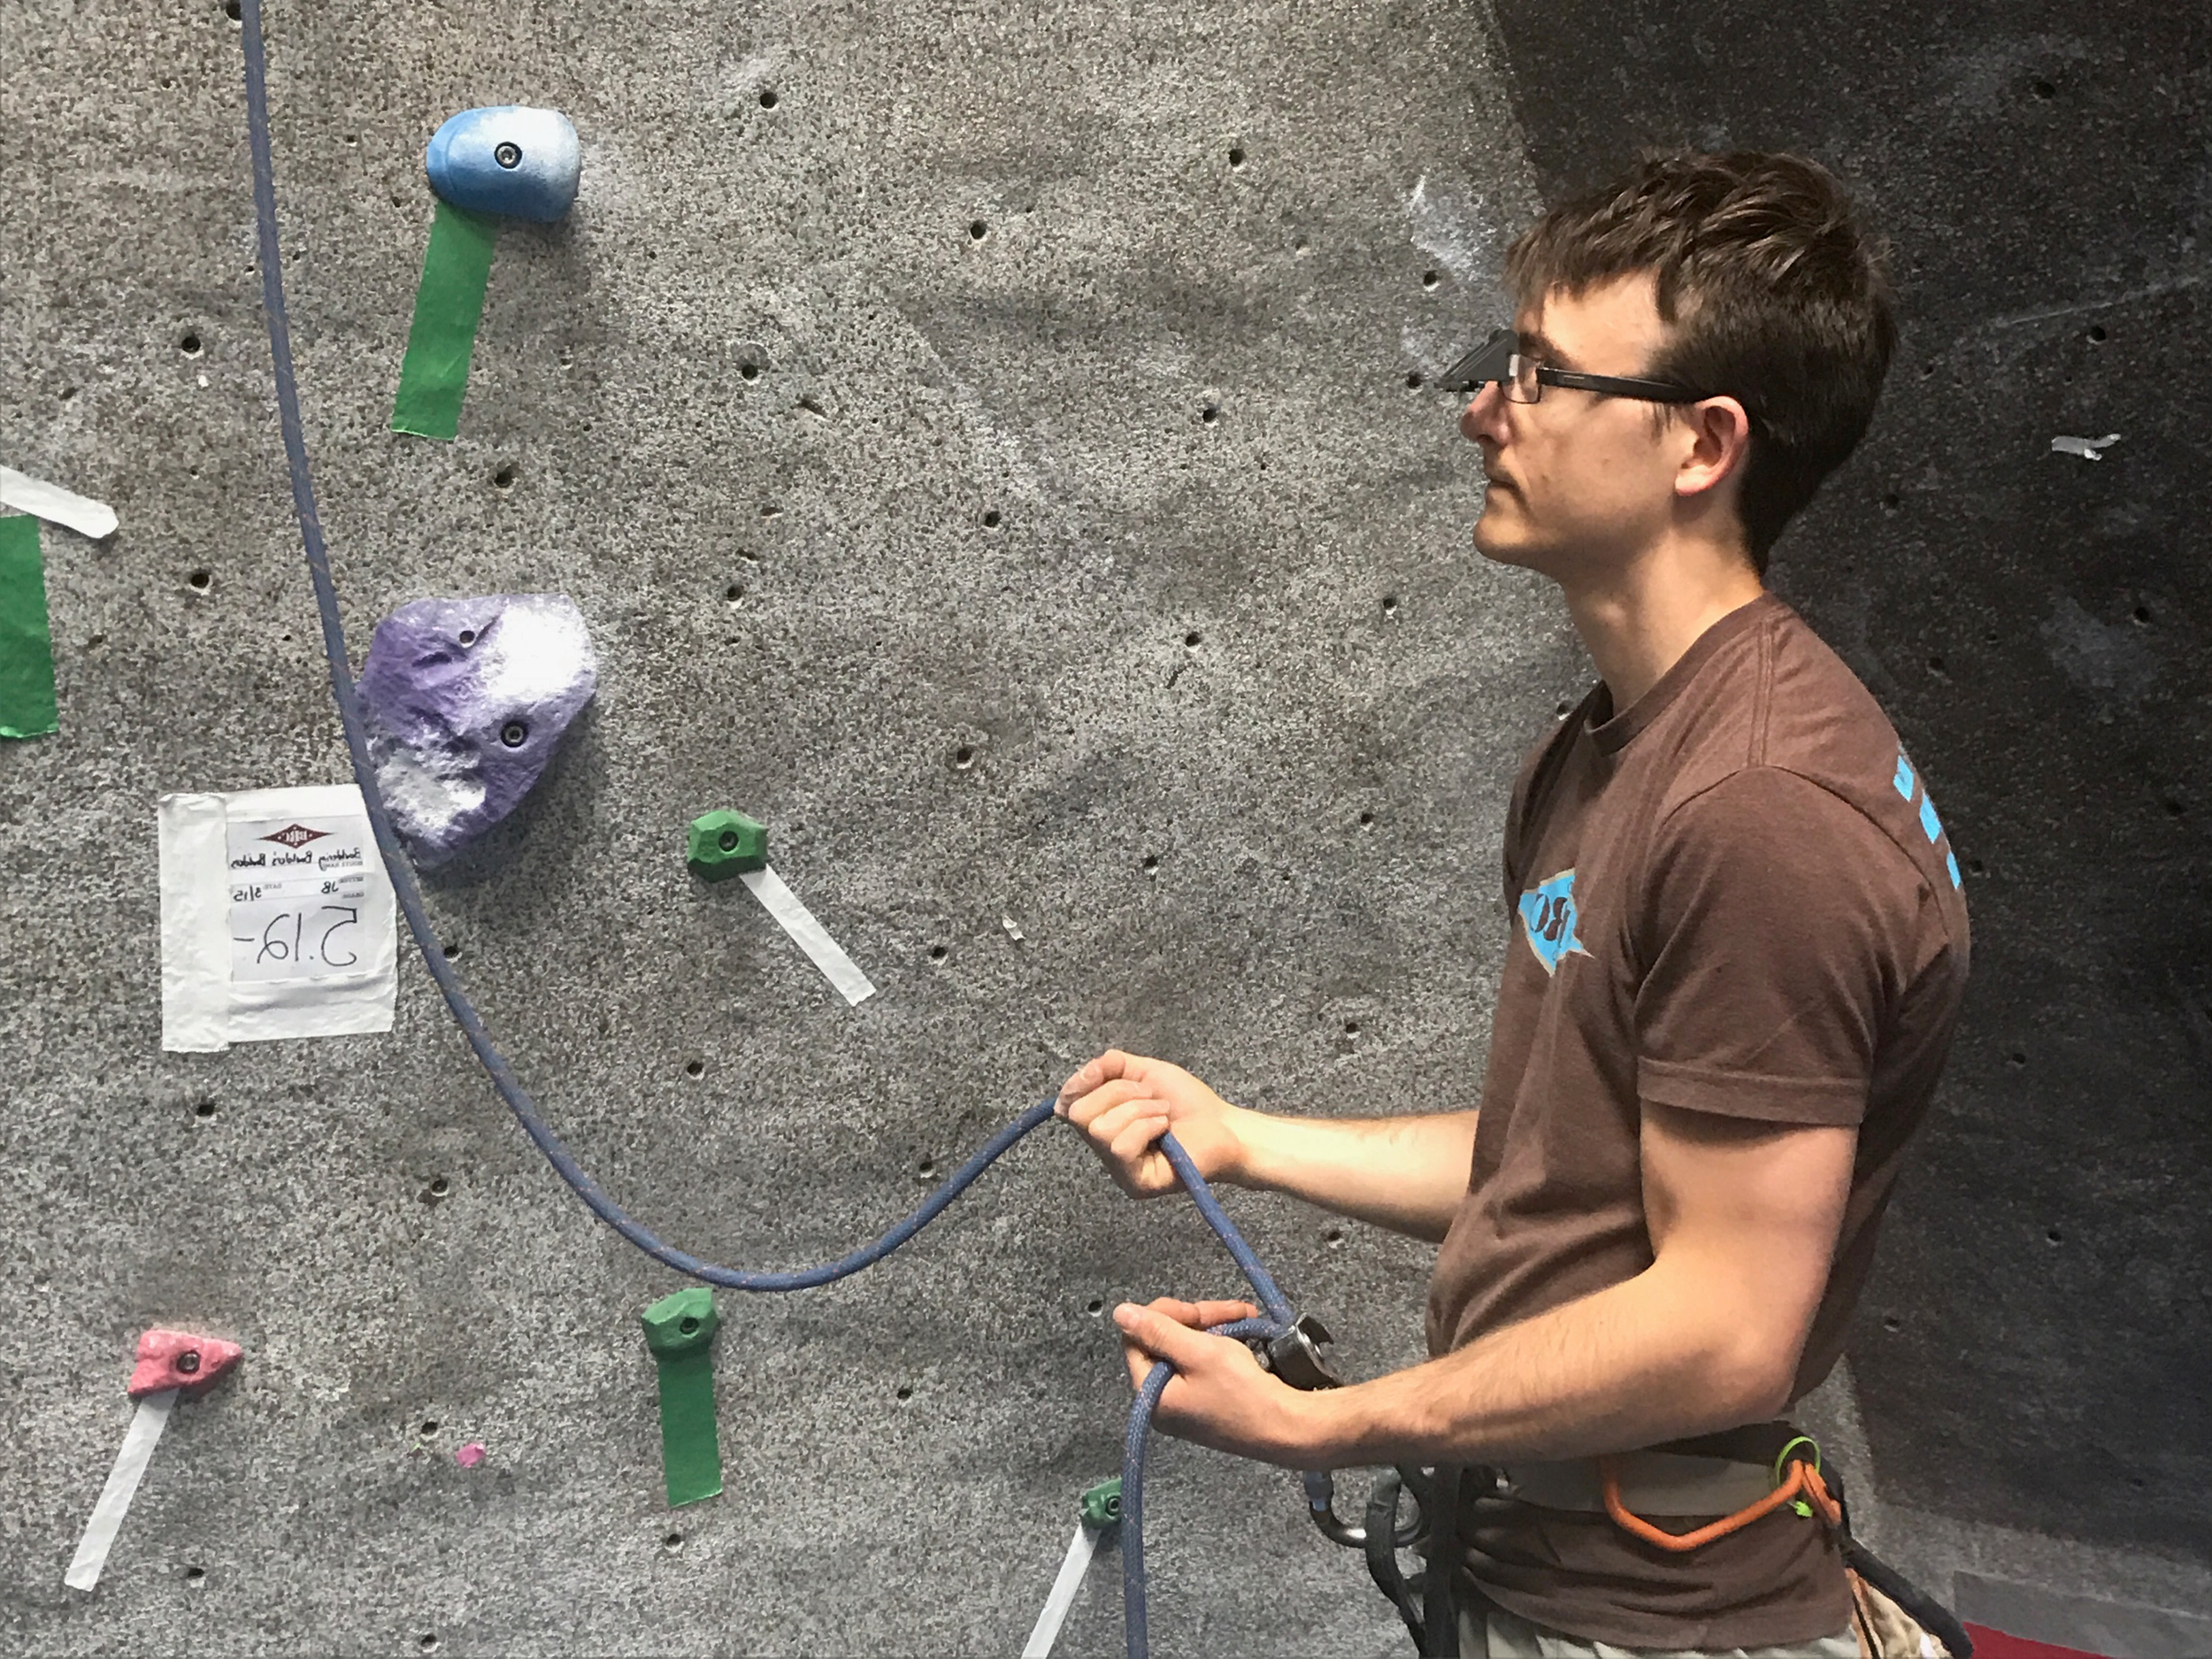 Problem solved!  Our clip-on belay glasses allow you to see the climber while looking straight ahead